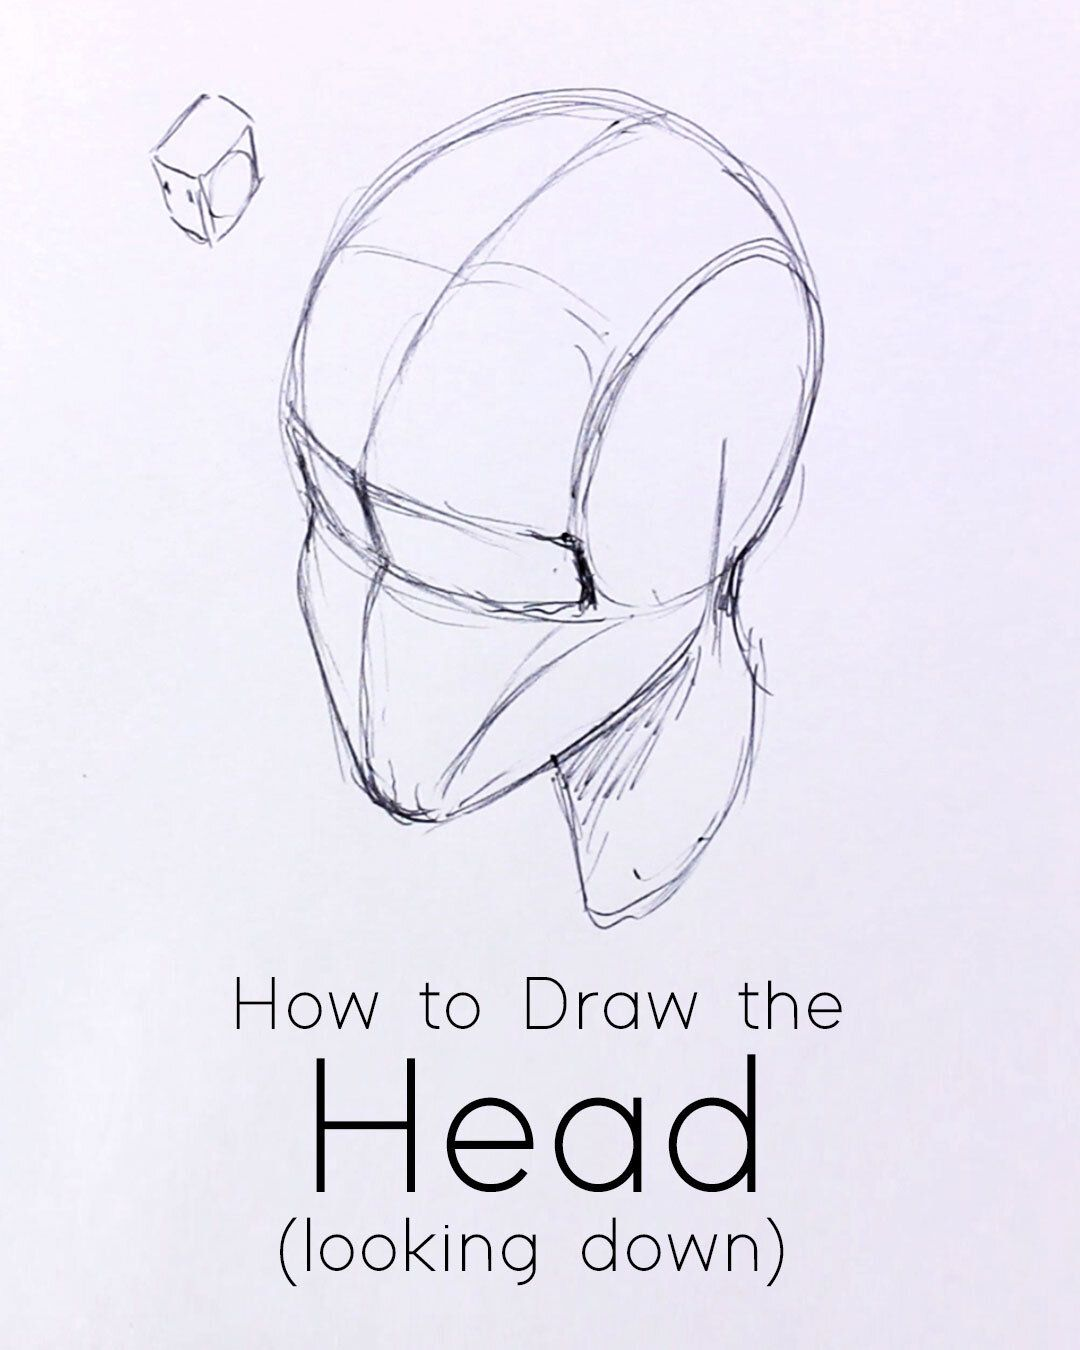 How To Draw A Head Looking Down Jeyram Anime Drawings Sketches Sketch Head Drawing Tutorial Face Drawings